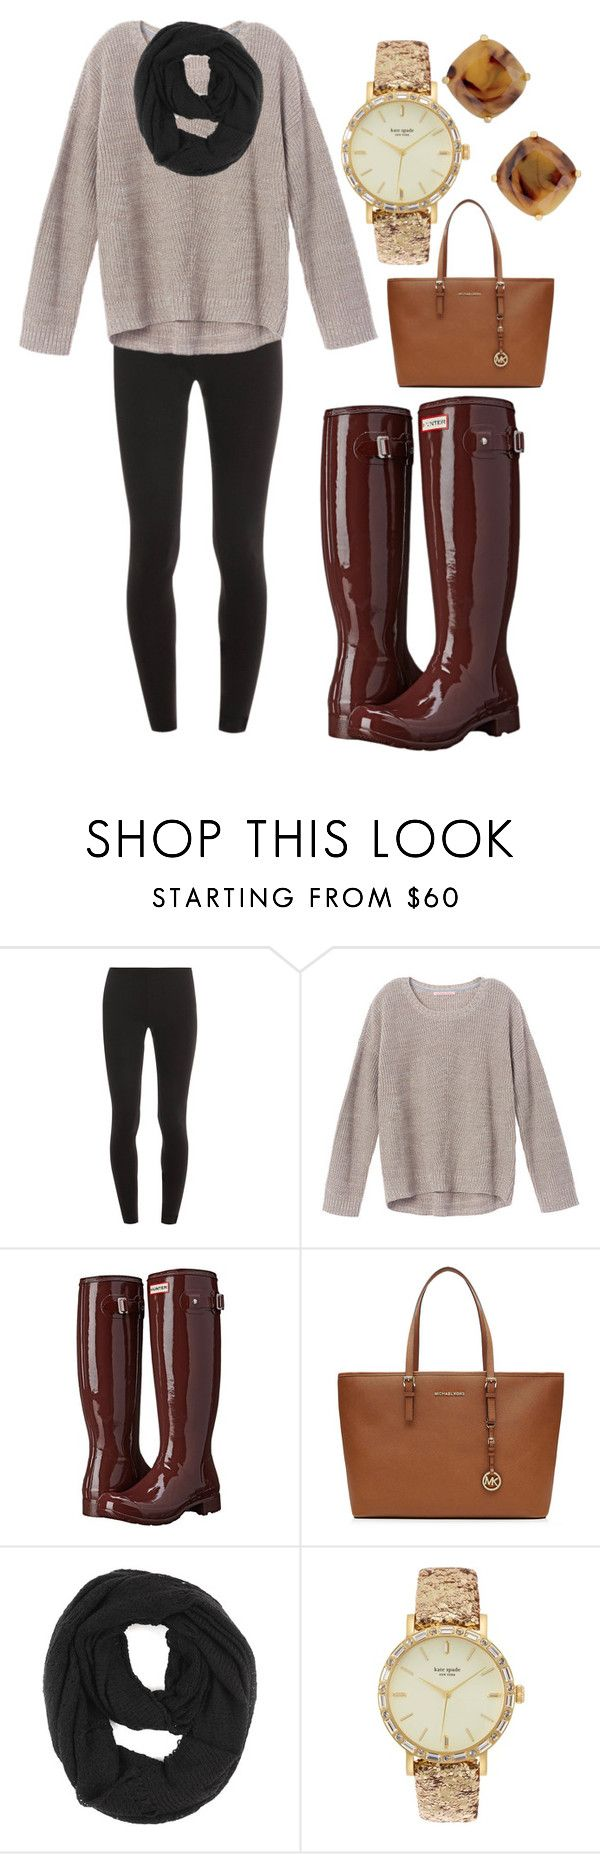 """I just hurt my back so bad!//read d"" by emmacaseyyyy ❤ liked on Polyvore featuring Splendid, Victoria's Secret, Hunter, MICHAEL Michael Kors, Paula Bianco and Kate Spade"